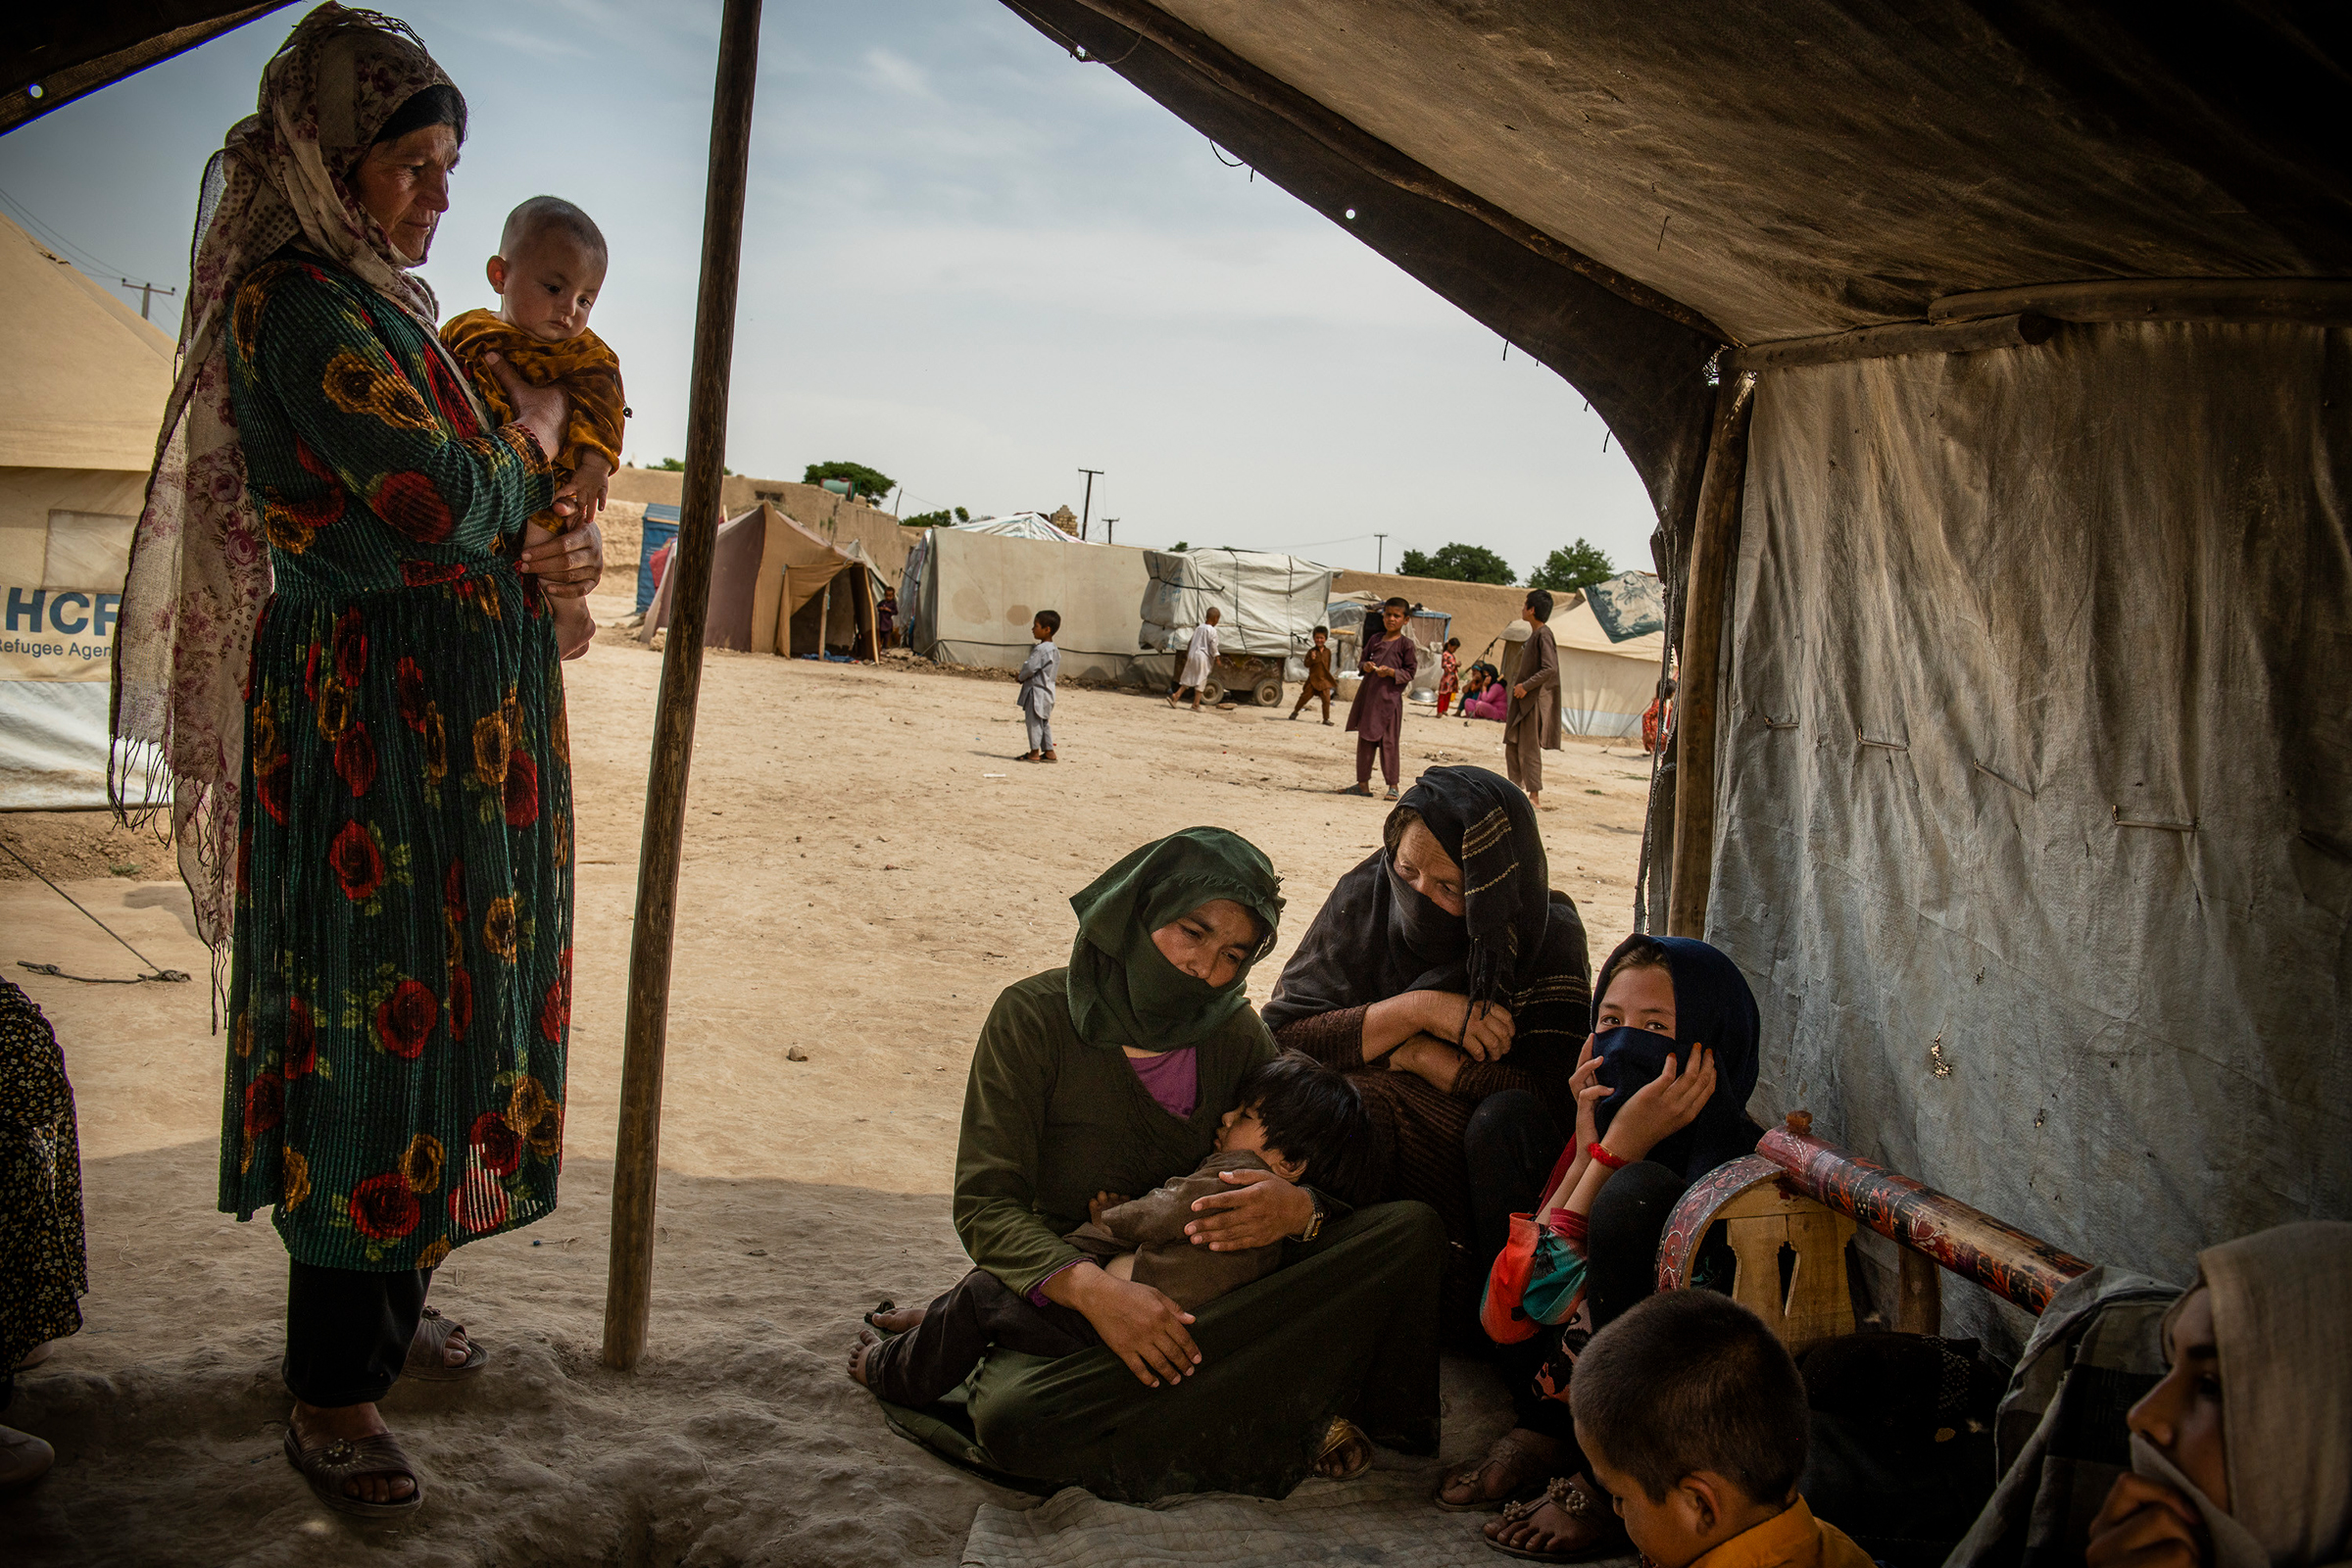 Kowsar 13, and her sister, Madina, 15, in a tent for internally displaced people in Afghanistan's northern Jowzjan Province on May 3, 2021. They have not been able to continue their education because the Taliban took over their home and banned girls like her from going to school.